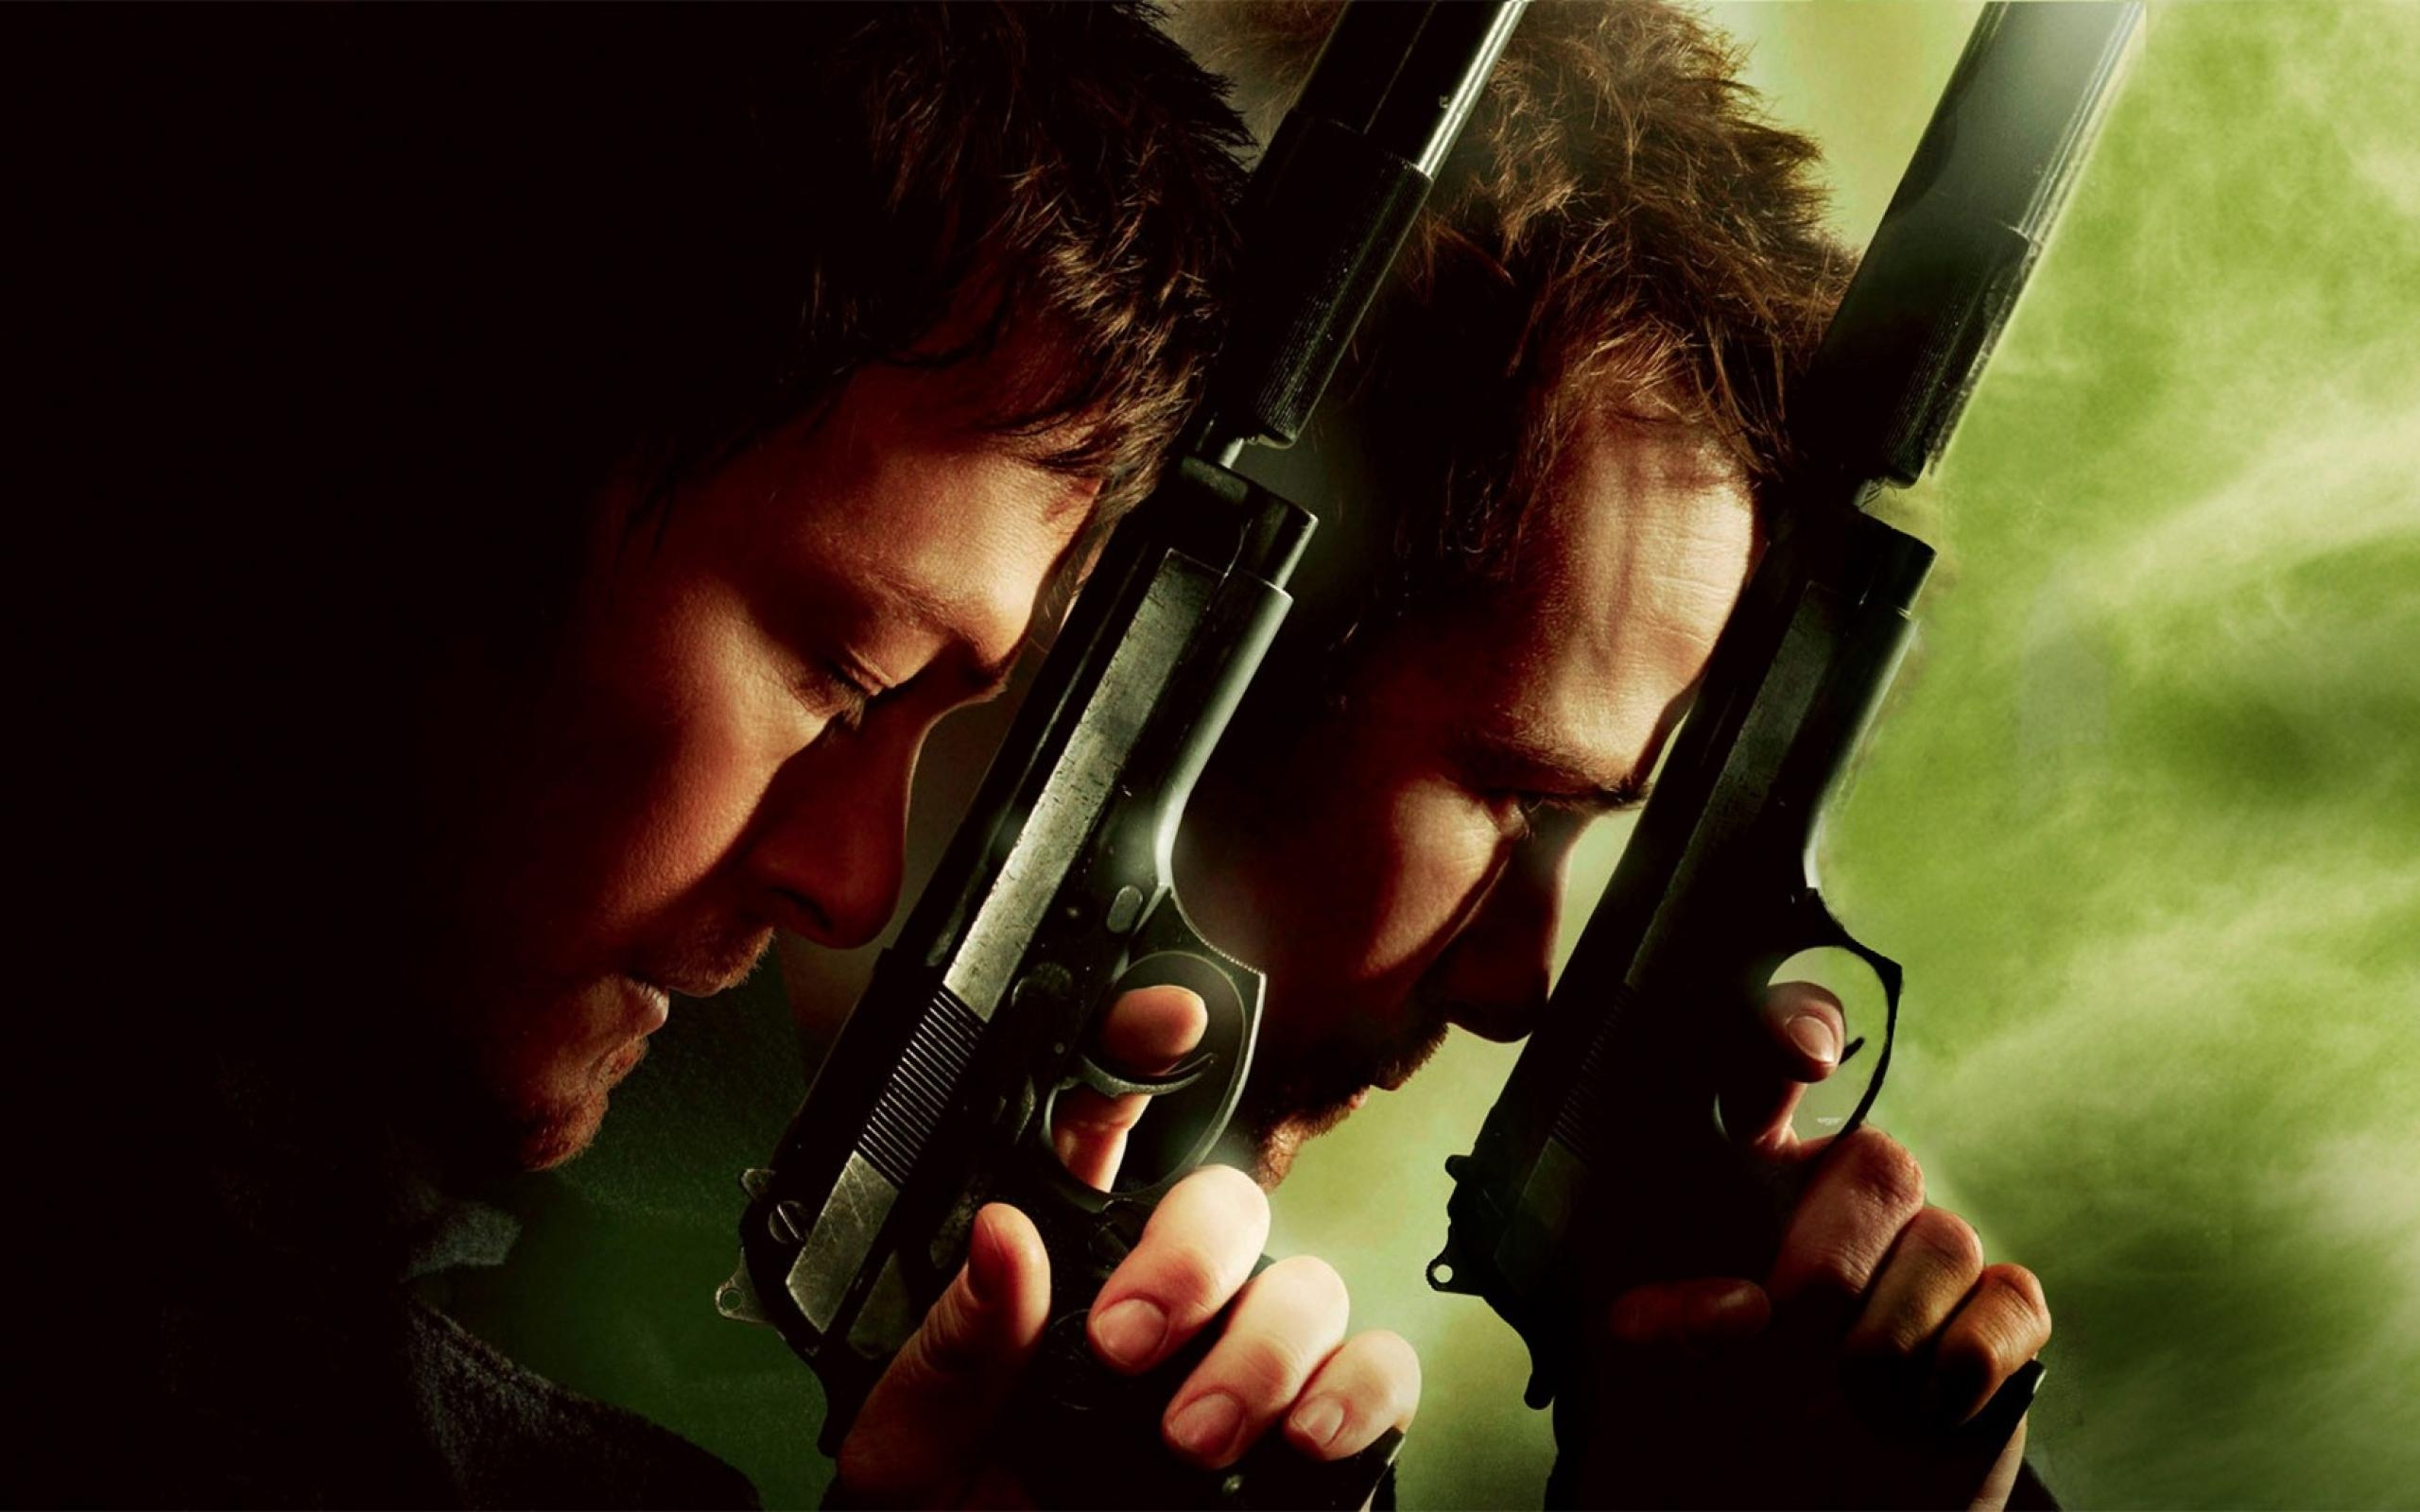 3 The Boondock Saints Ii: All Saints Day Hd Wallpapers Intended For Boondock Saints Wall Art (View 13 of 20)